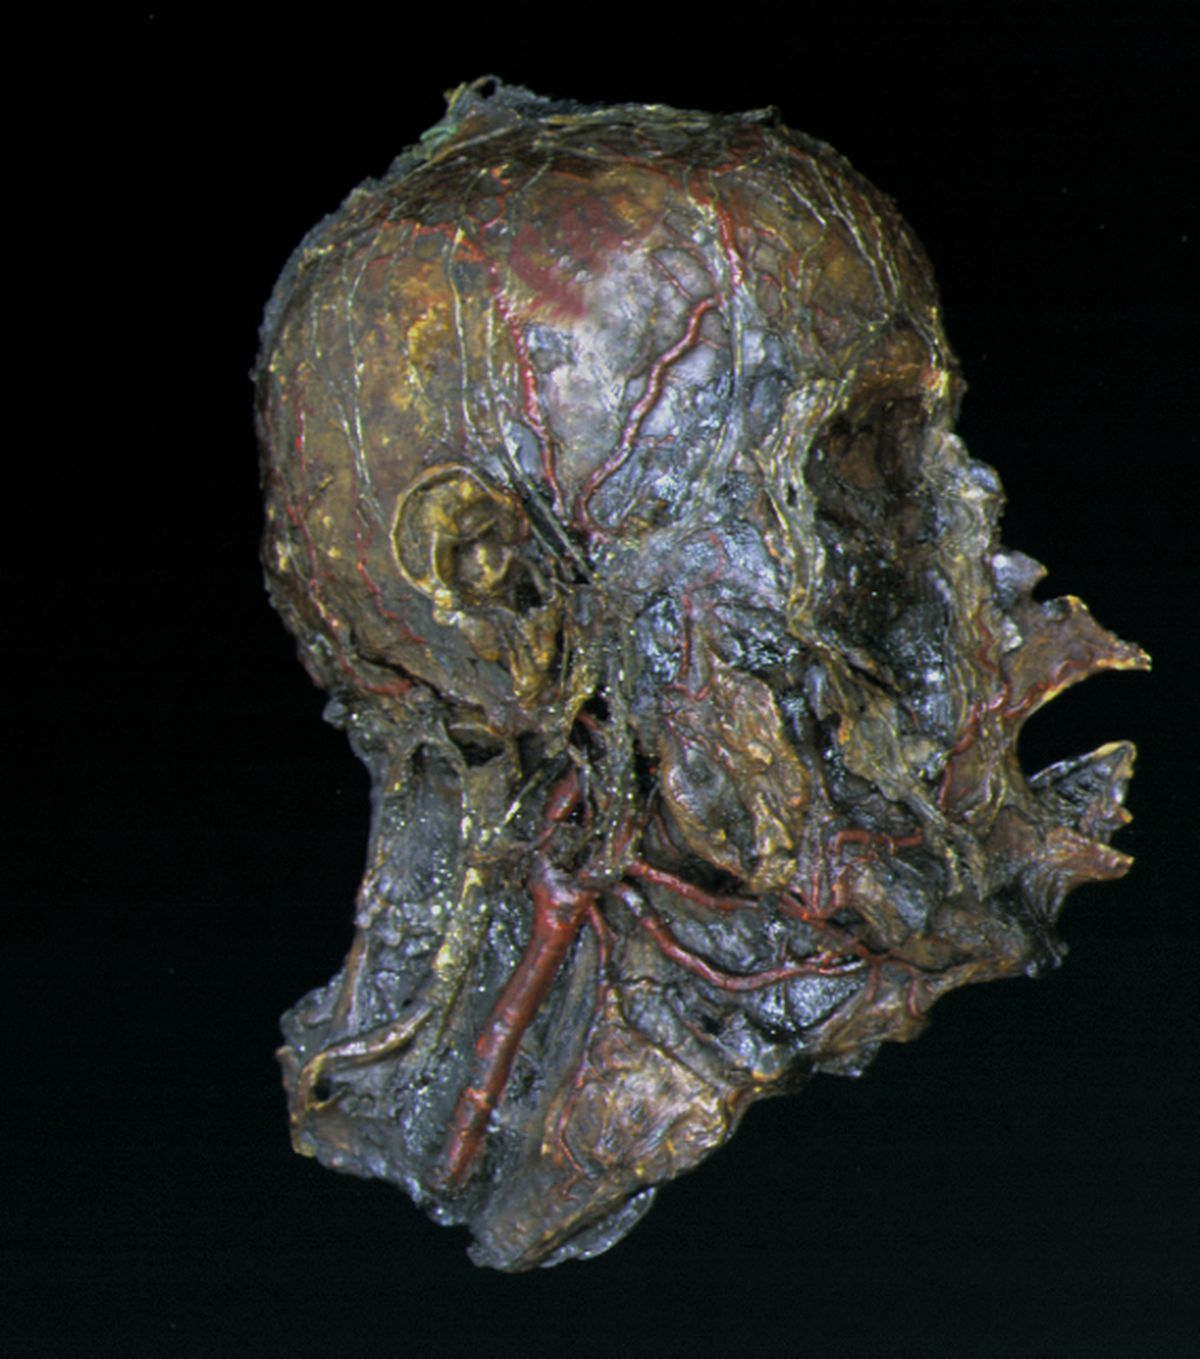 A Burns Collection specimen that shows different anatomical structures. This head has been fully dissected to show various blood vessels and connective tissues in great detail.